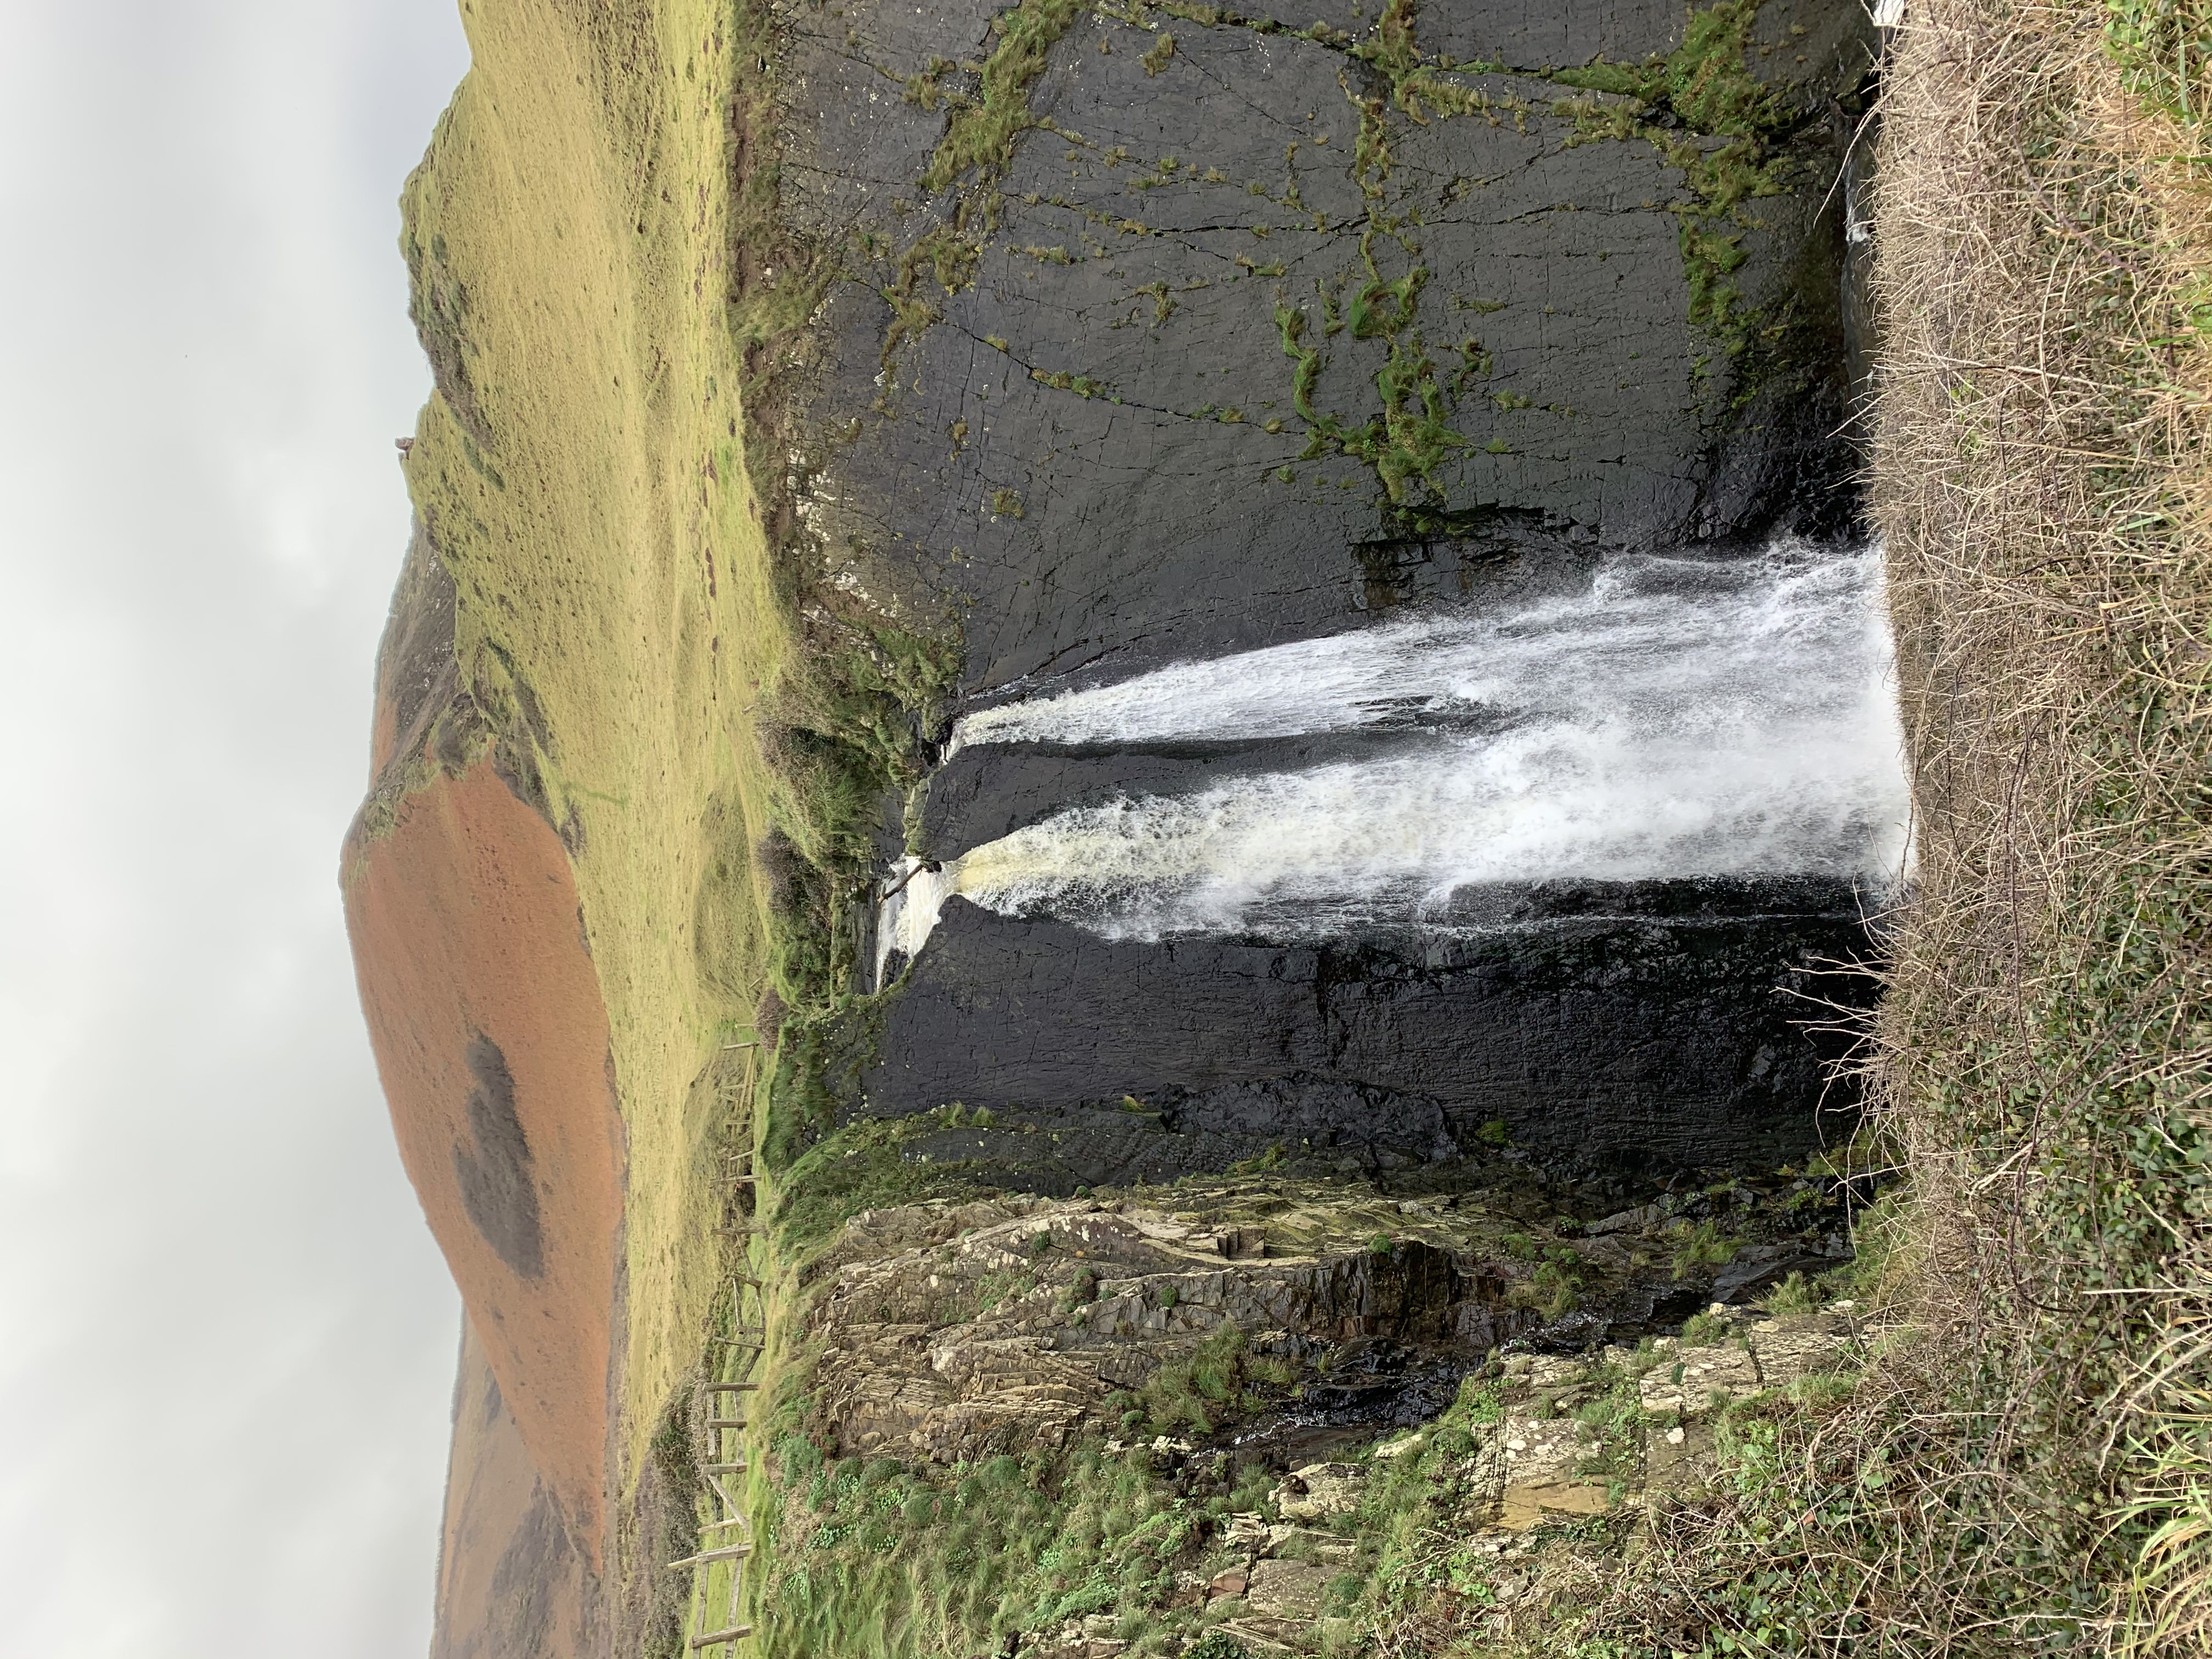 Waterfall at Speke's Mill Mouth on The South West Coast Path from Hartland Quay to Morwenstow